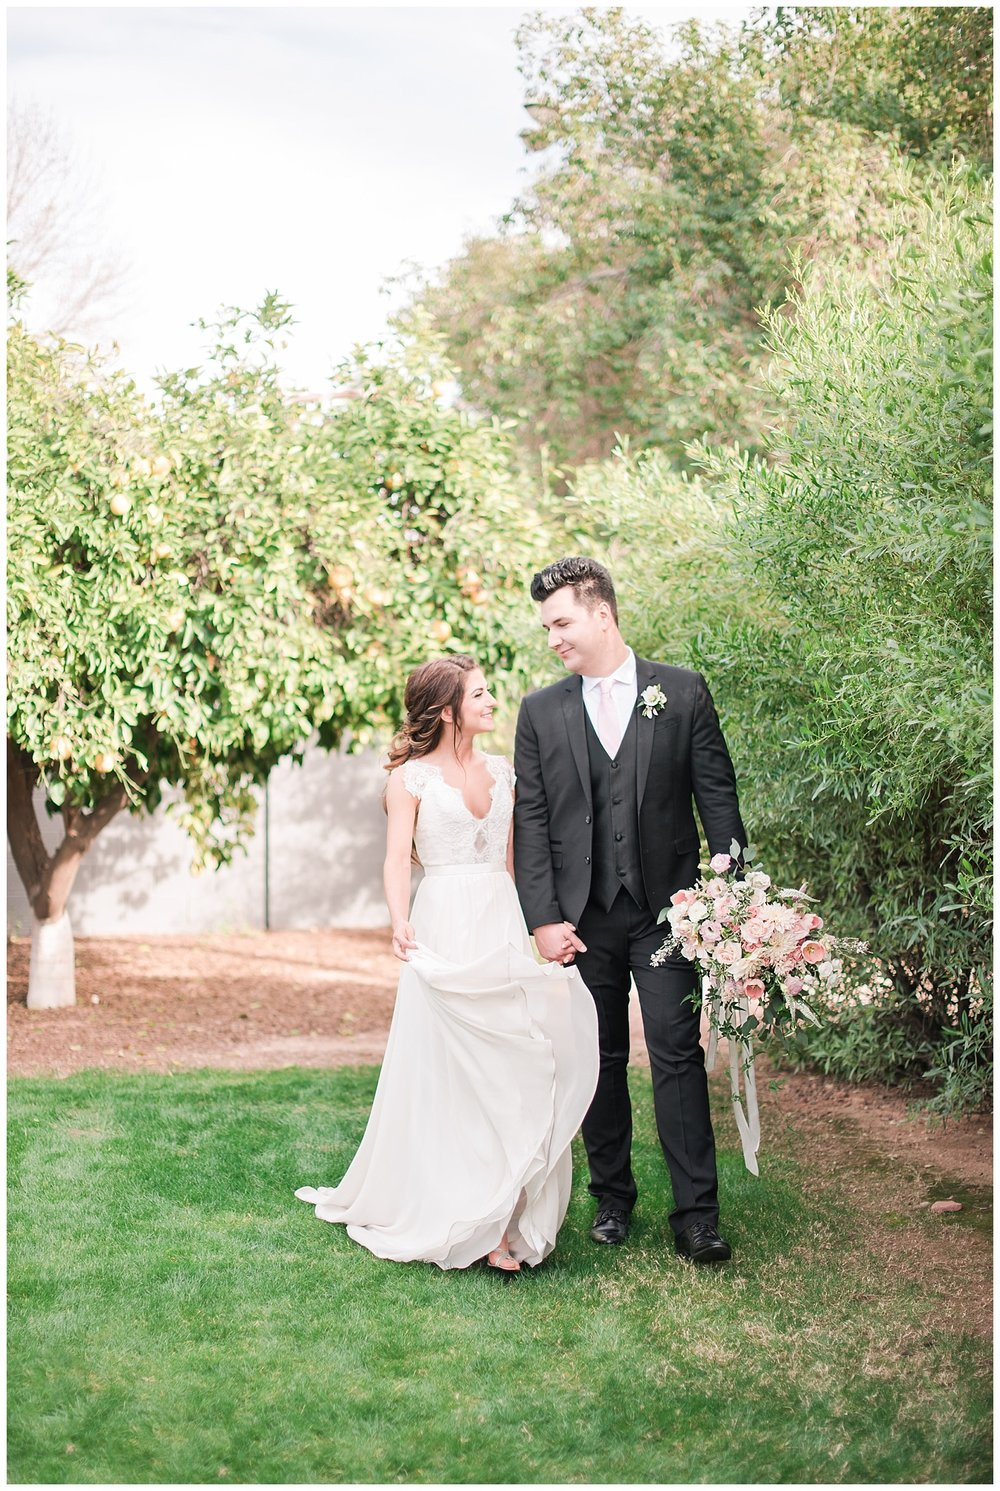 Beautiful bride Jessica wearing dress provided by Bella Lily Bridal in Phoenix and dashing groom holding bouquet made with love by Garden Gate Flowers, photographed at Gather Estate in Mesa, Arizona.